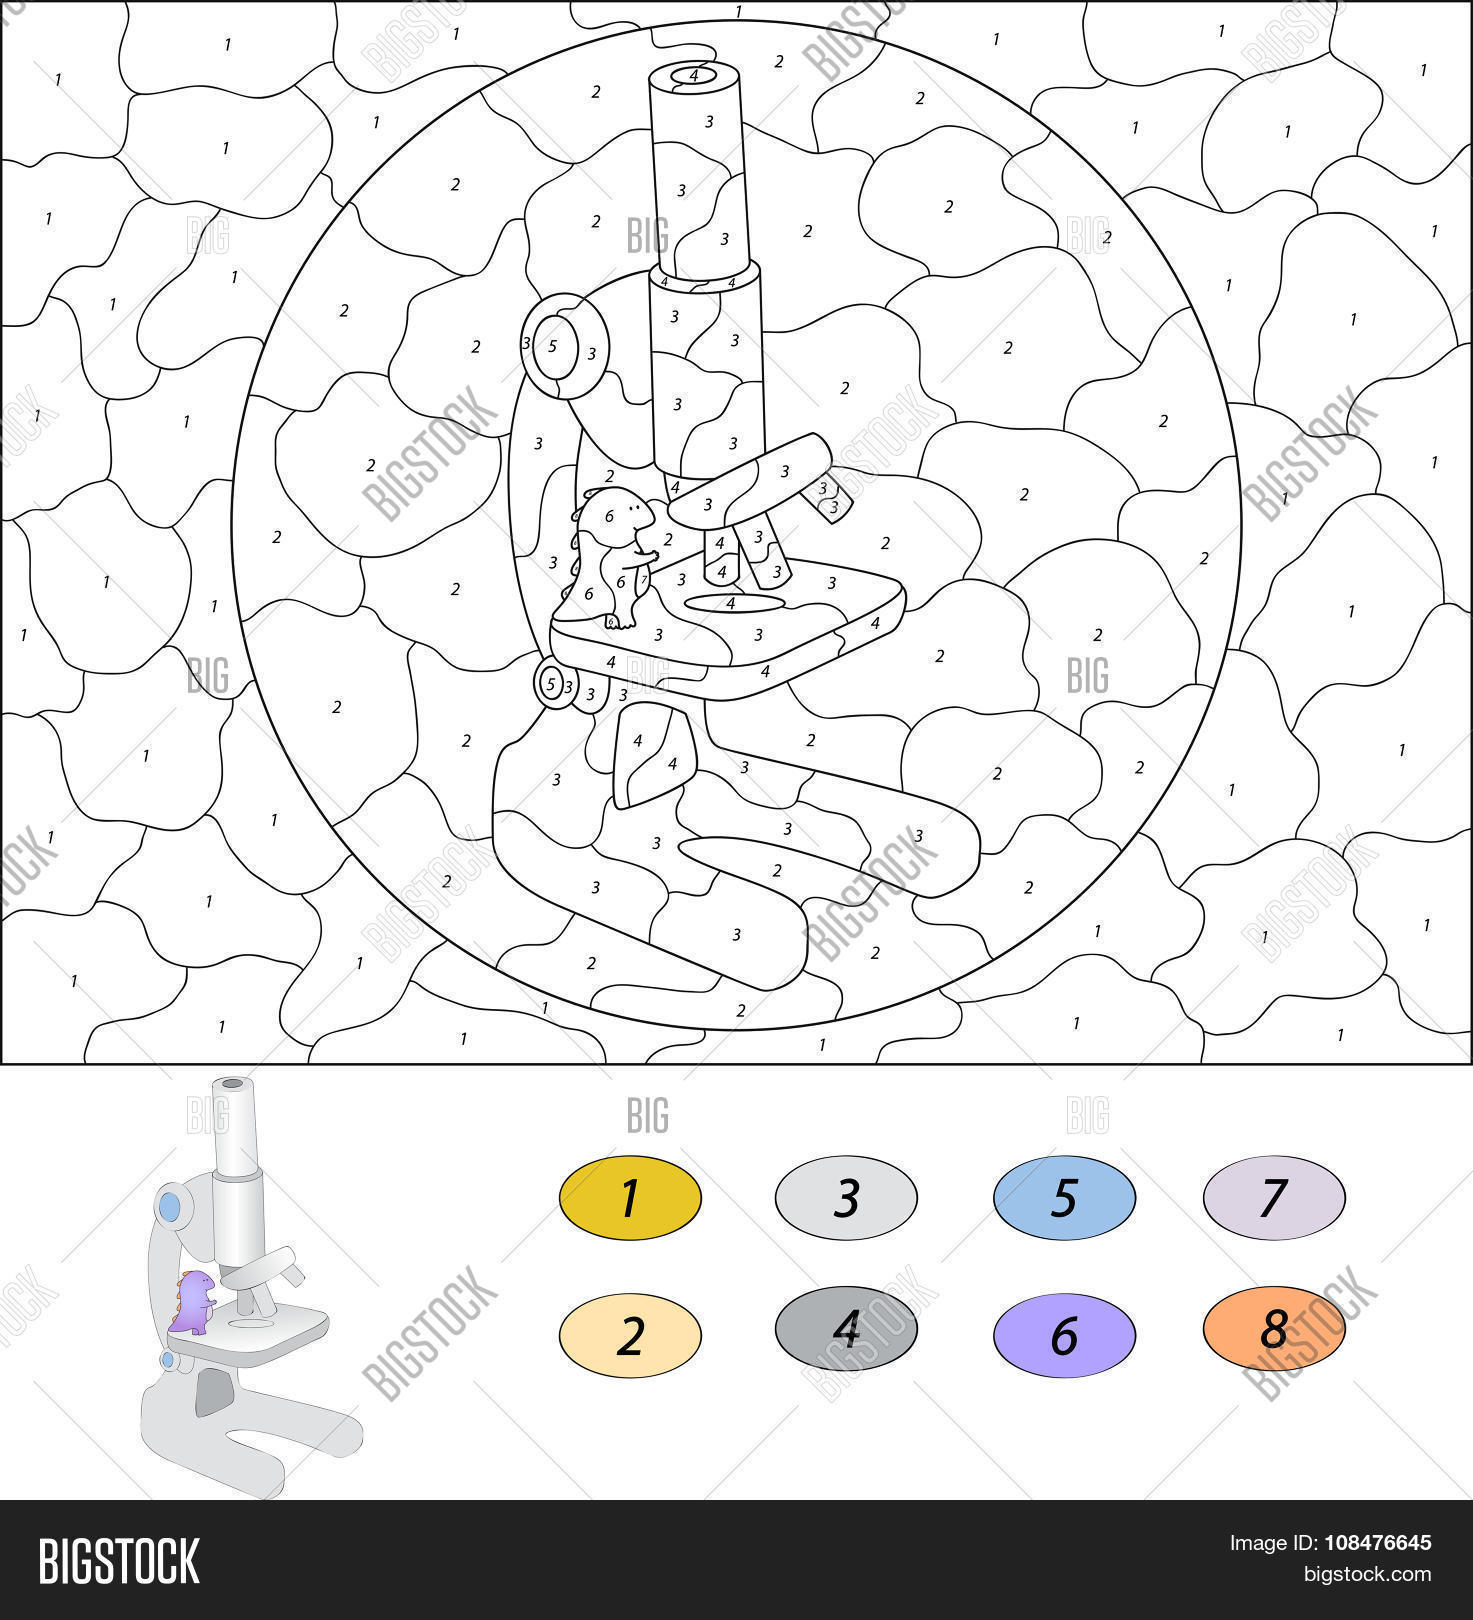 Game color by numbers - Color By Number Educational Game For Kids Funny Cartoon Dragon Considering The Microscope Vector